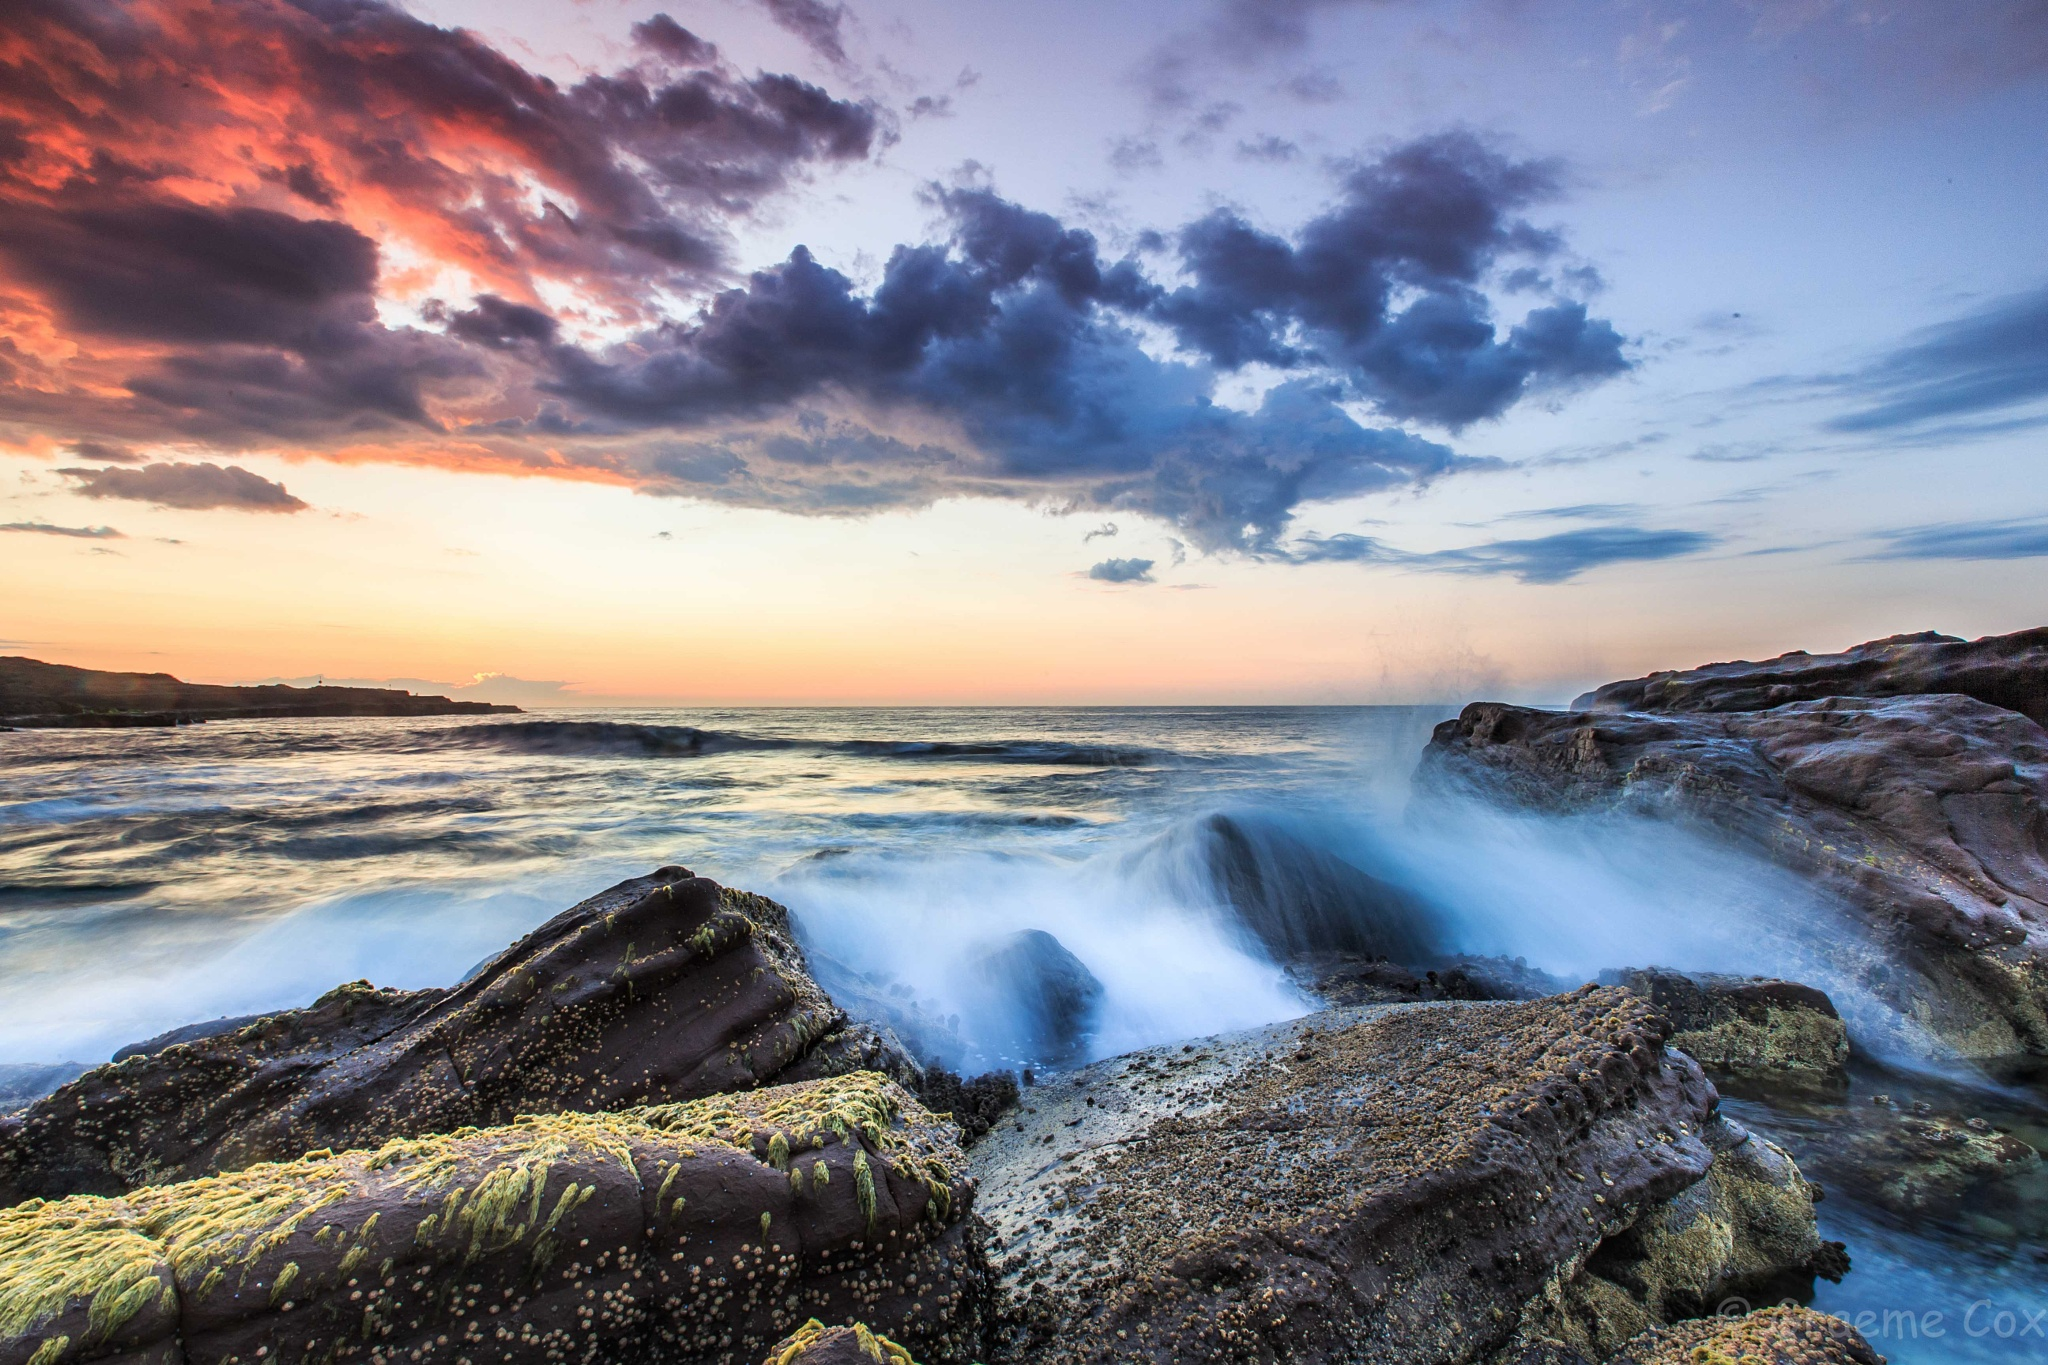 Before the Sunrise by Graeme Cox